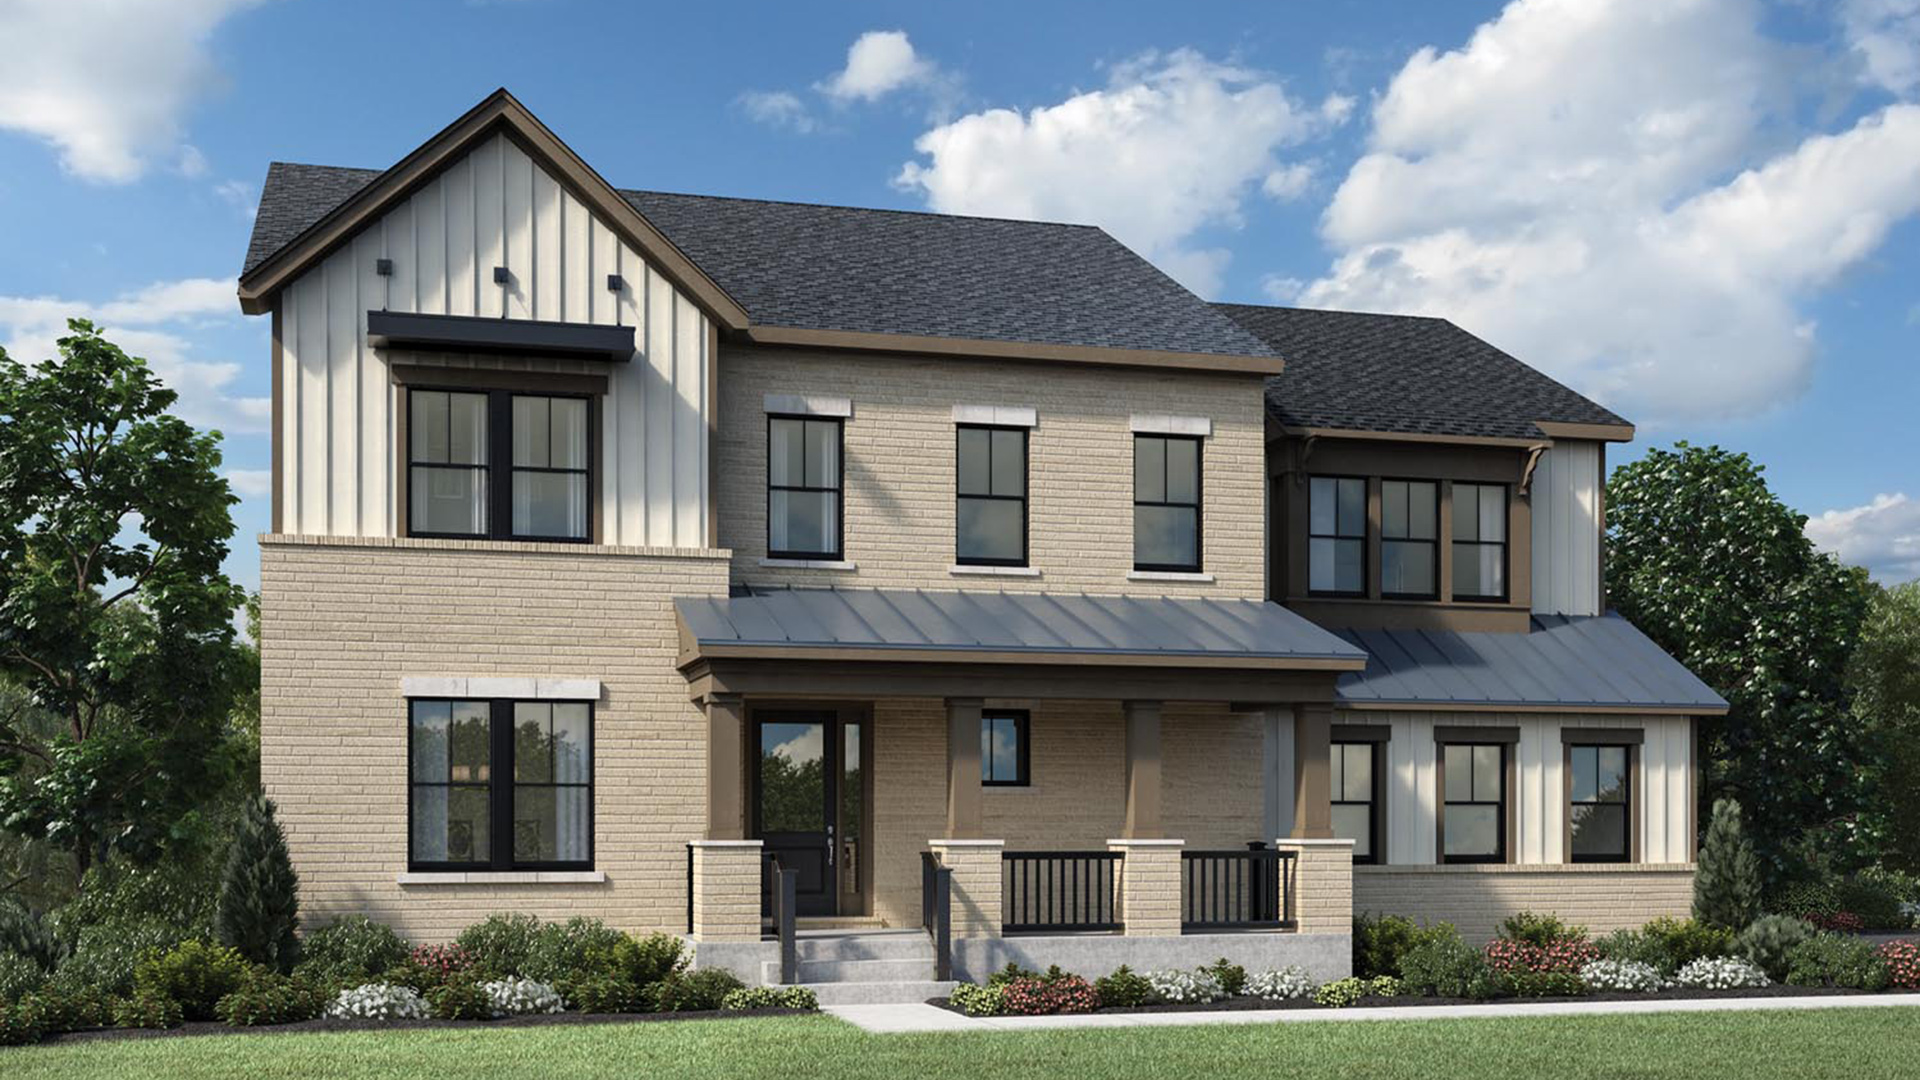 The Ridings at North Branch   The Reston Home Design